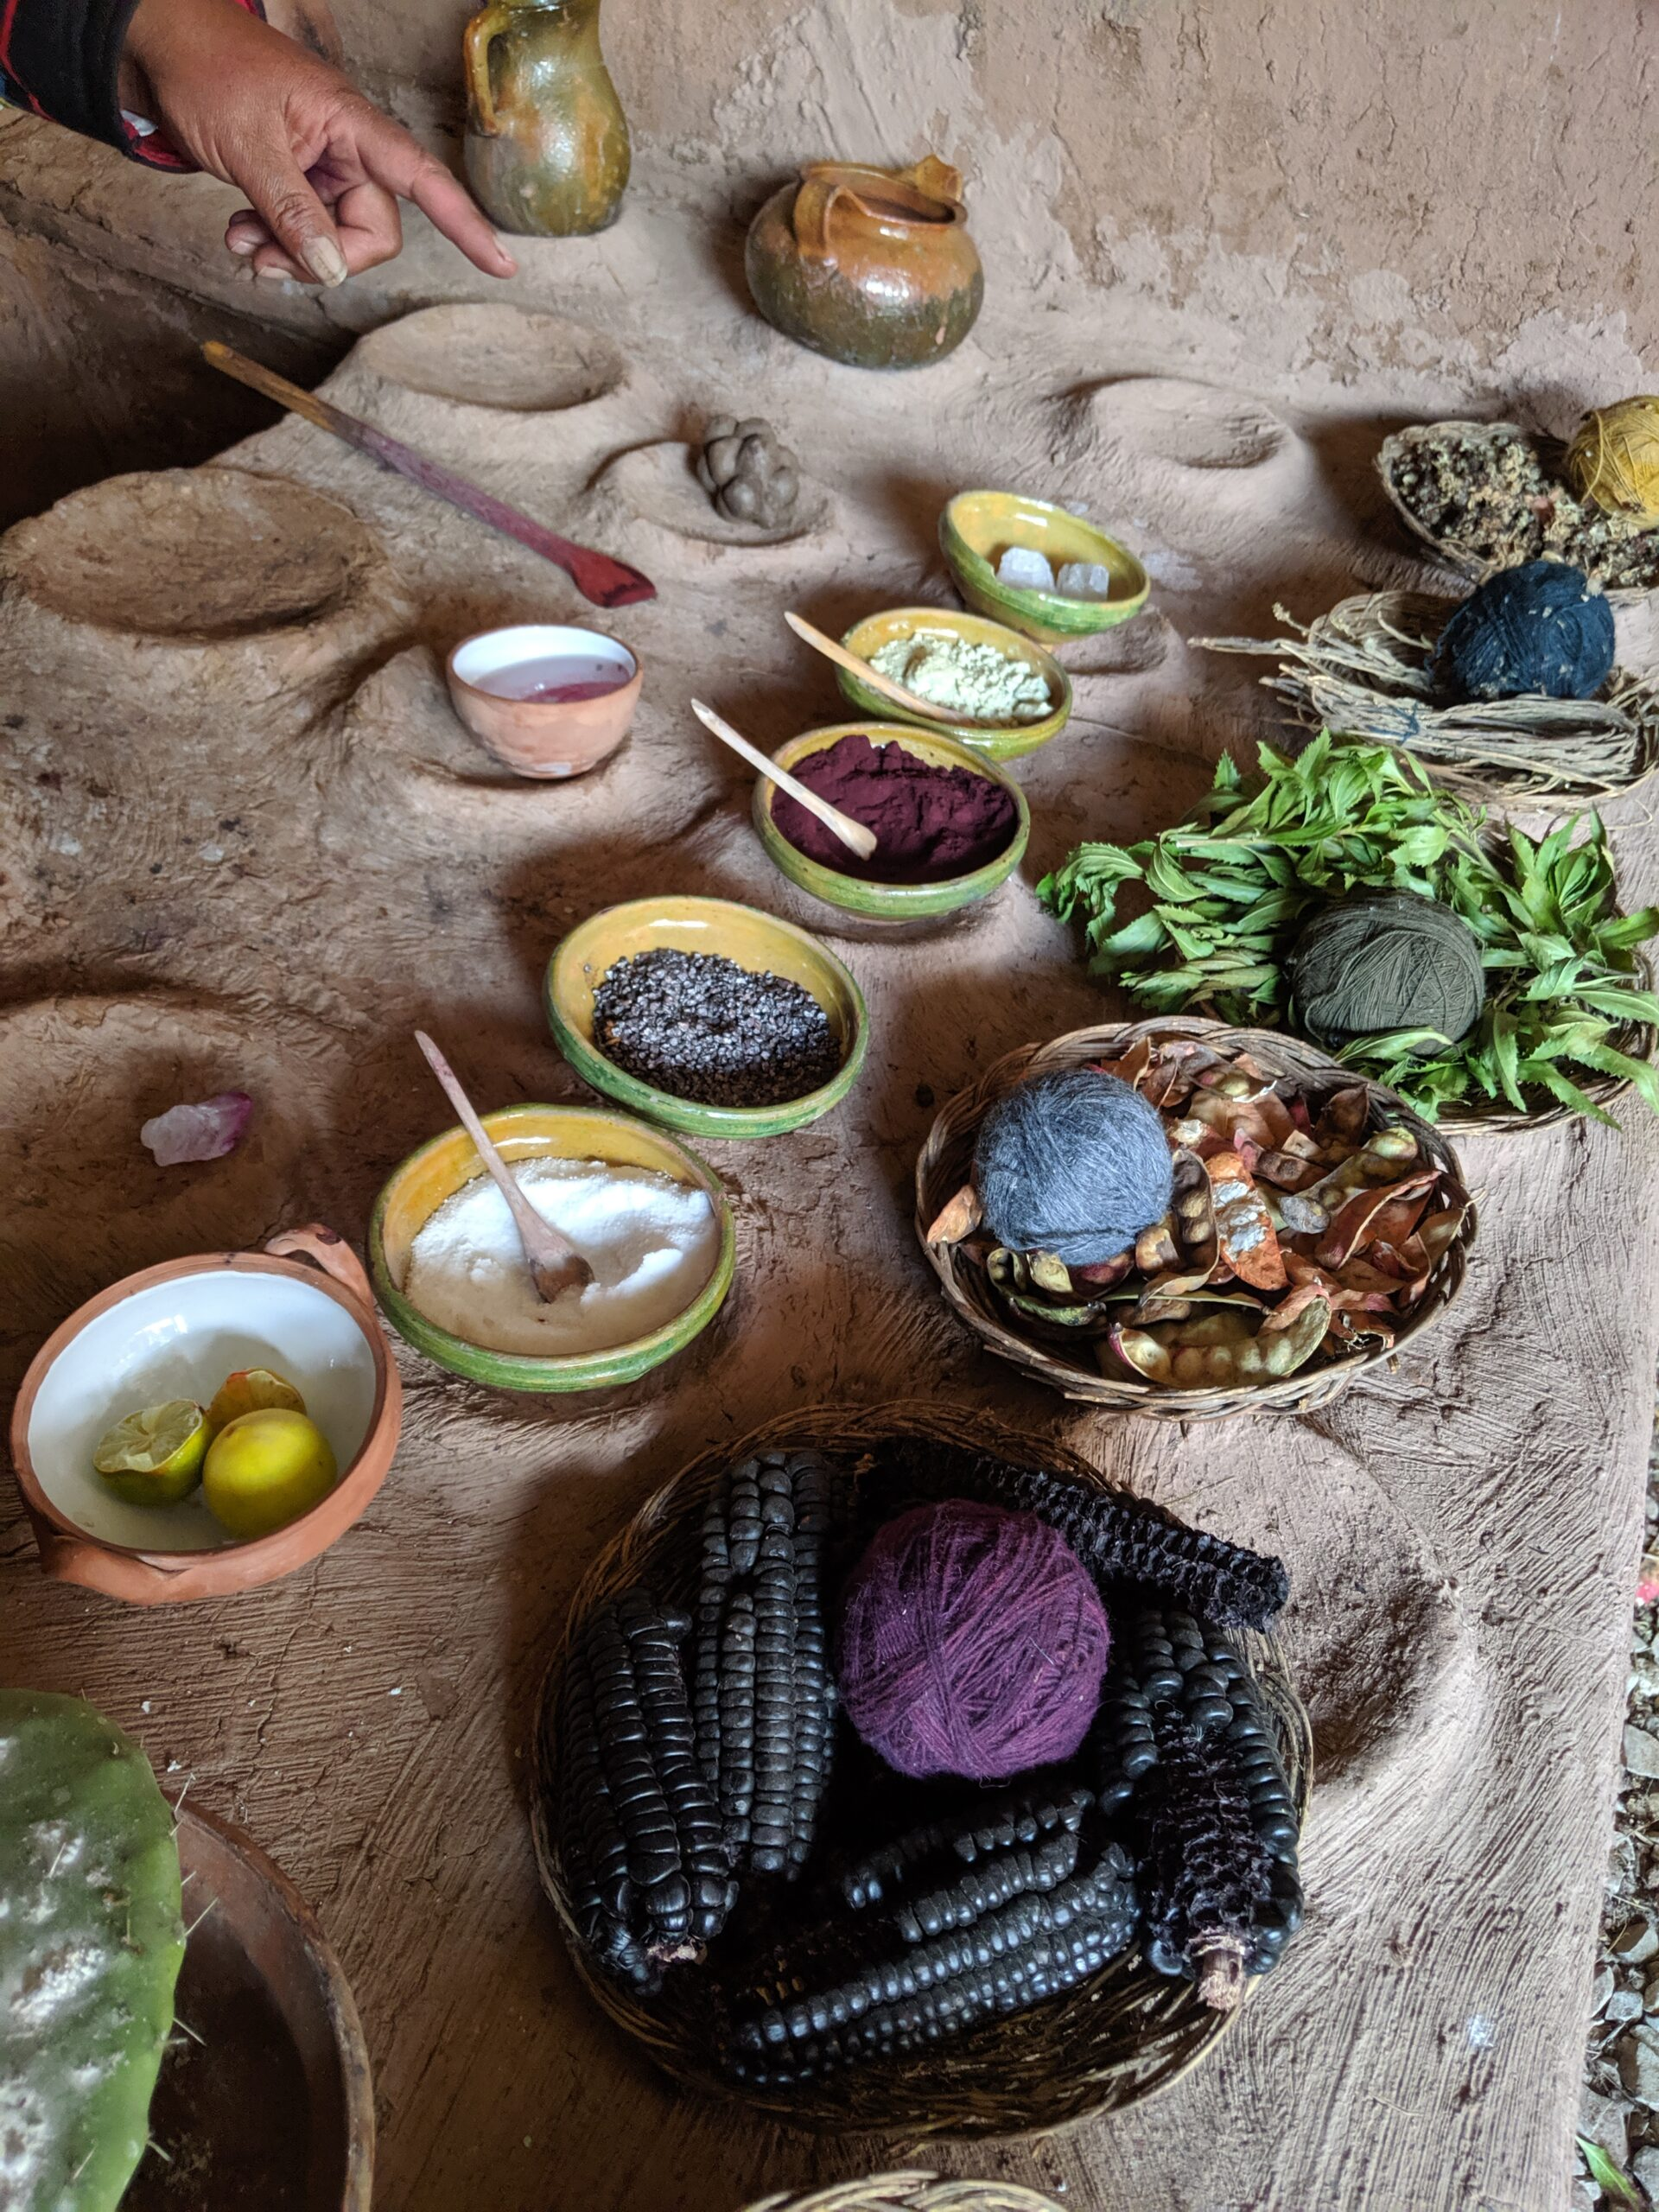 A table laid out with various natural substances used to die yarn made from alpaca fiber.